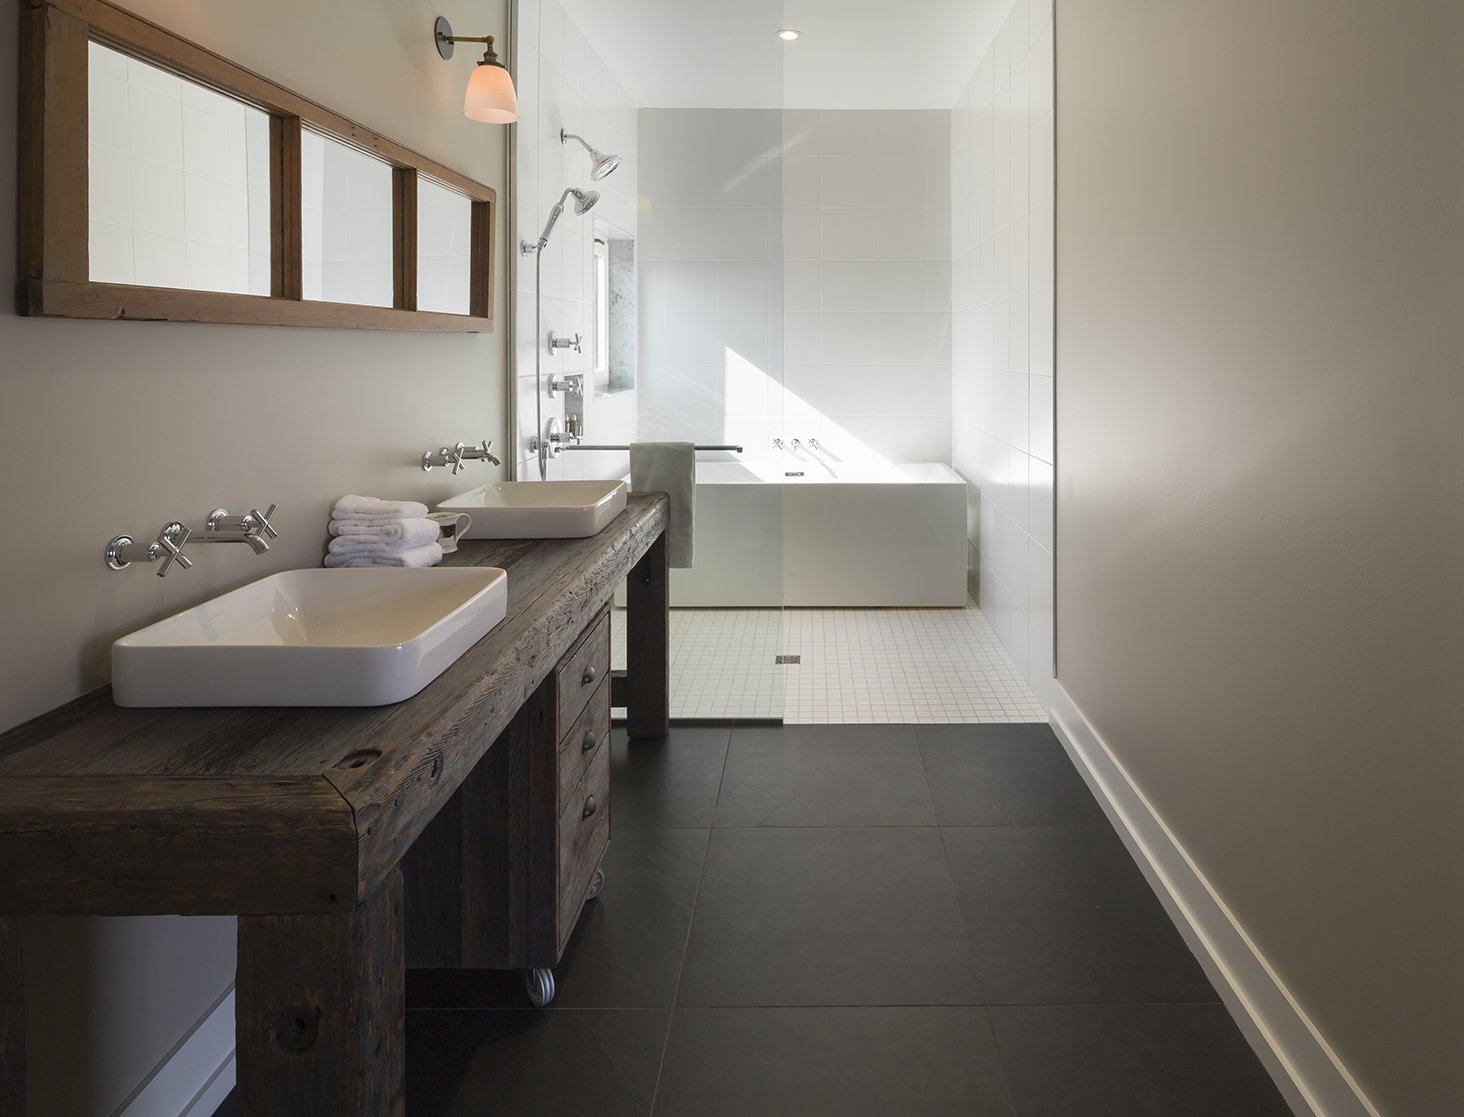 Bath Room, Wood Counter, Open Shower, Freestanding Tub, and Vessel Sink The master bathroom features sinks and fixtures by Kohler. The tub is by Aktuell. - North Hatley, Quebec Dwell Magazine : July / August 2017  Photo 9 of 12 in An Artist and Farmer Work With a Toronto-Based Studio to Build a Barn-Inspired Home